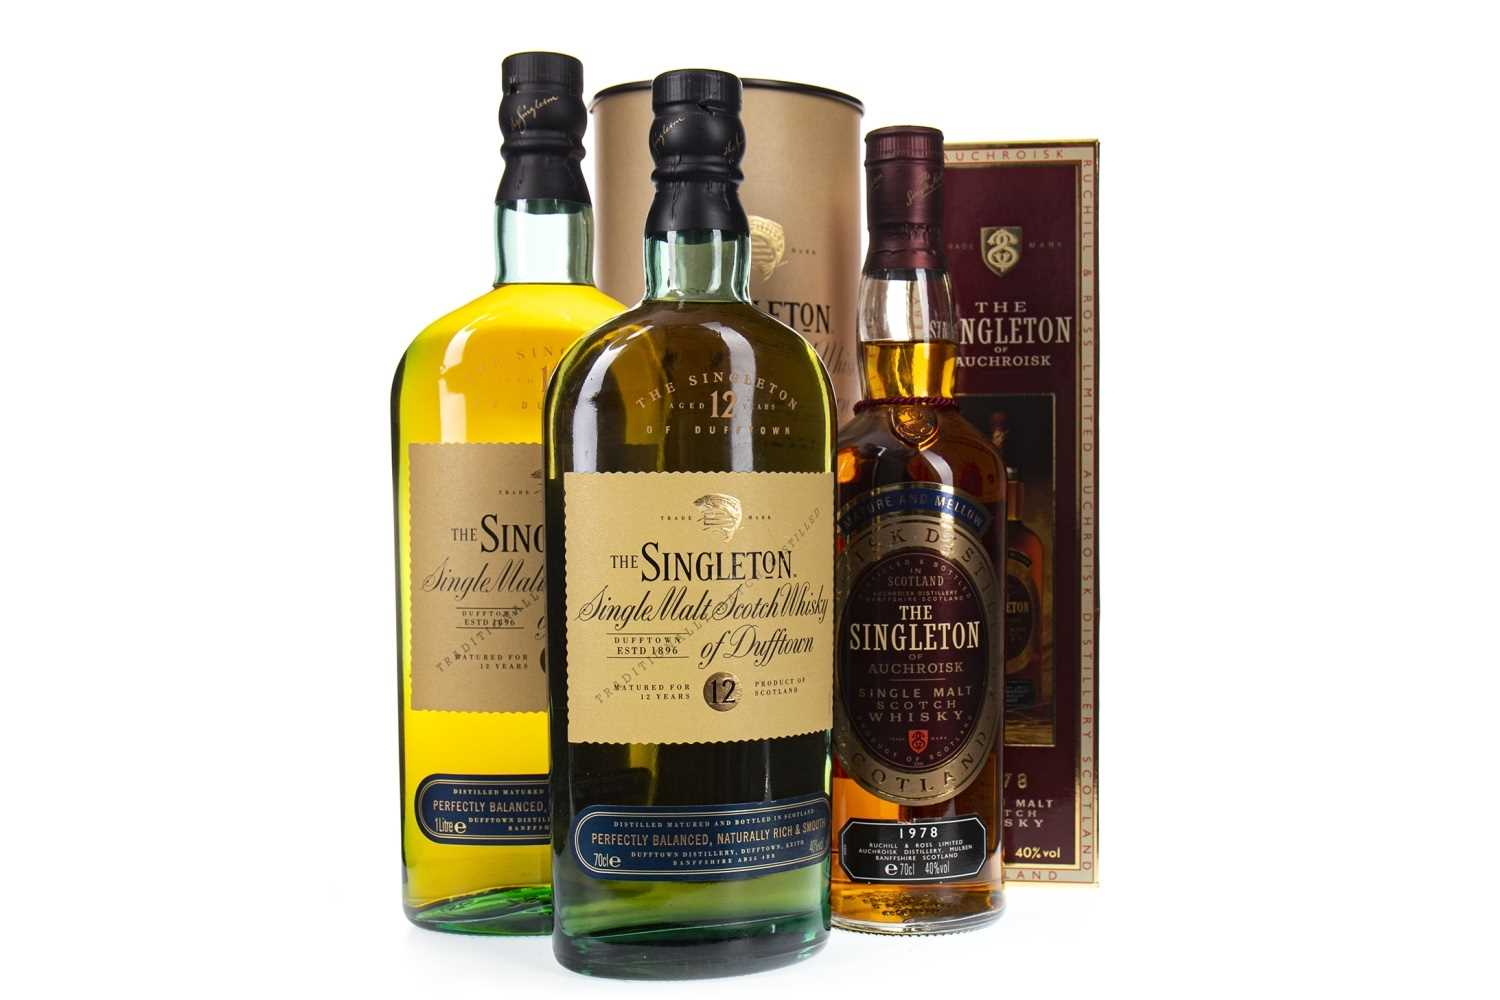 Lot 321-ONE BOTTLE AND LITRE OF SINGLETON OF DUFFTOWN 12 YEARS OLD, AND SINGLETON OF AUCHROISK 1978